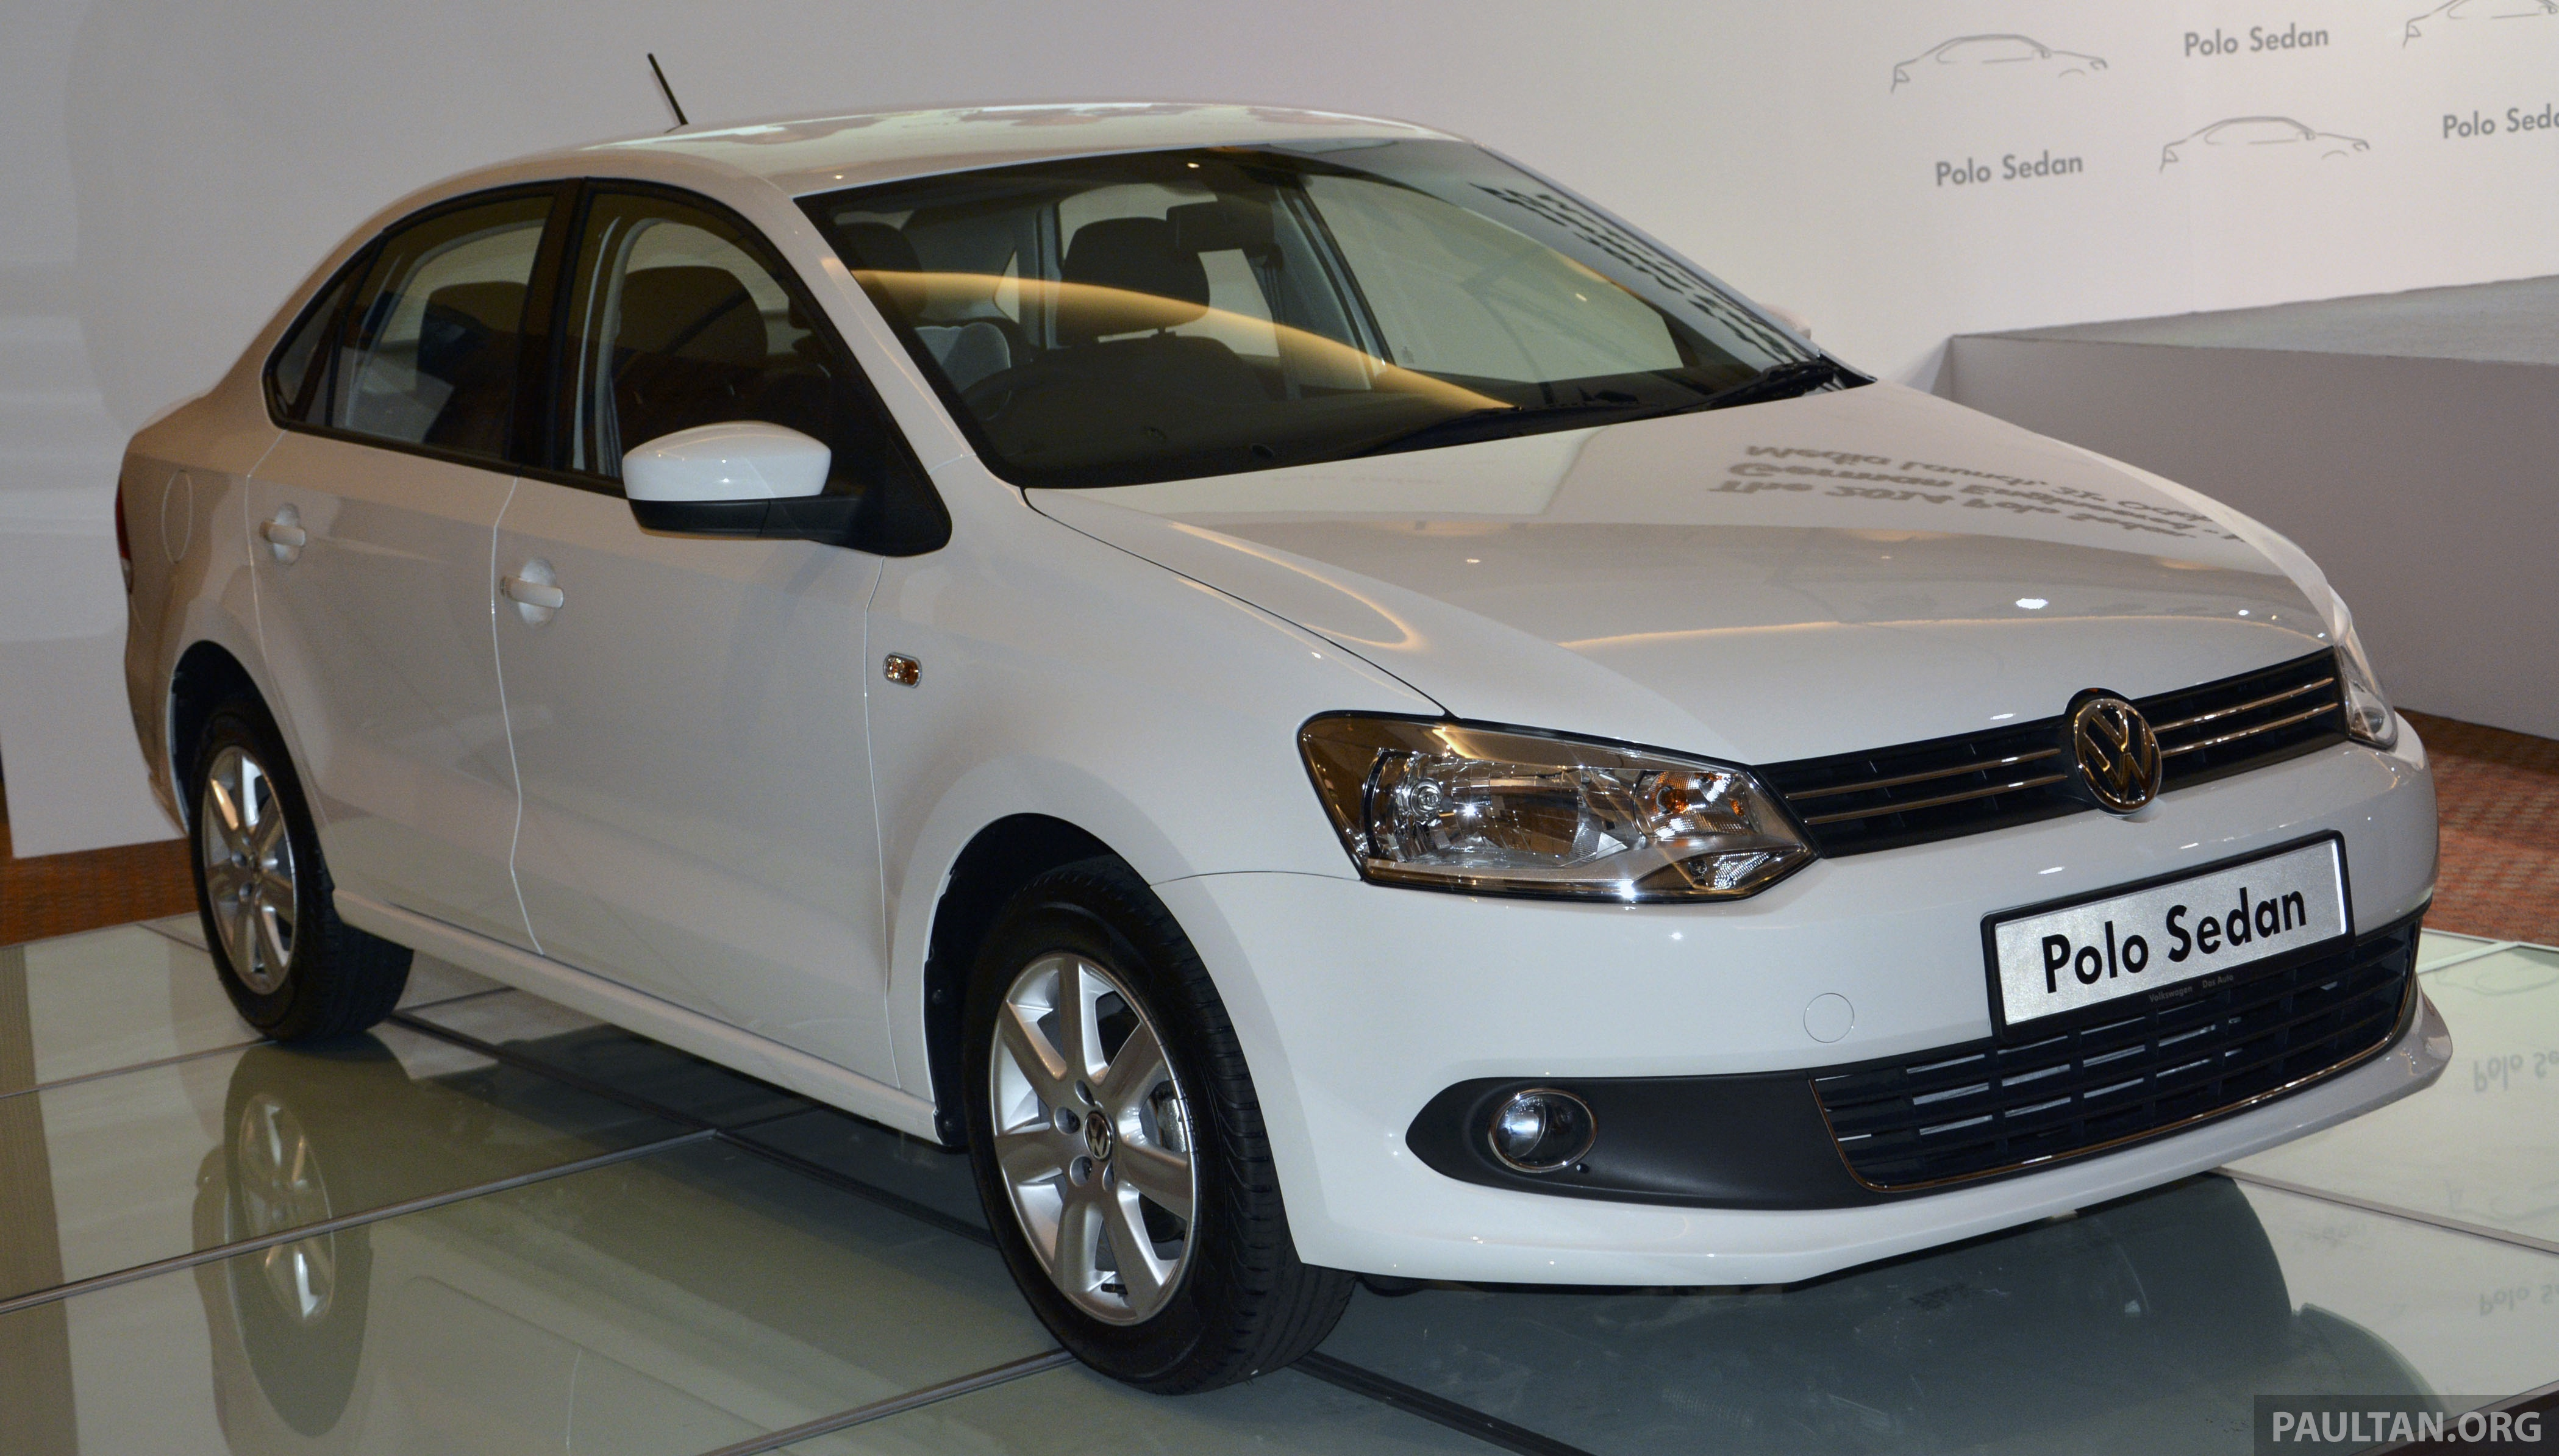 2014 Volkswagen Polo Sedan Ckd Launched Rm86k Image 207429